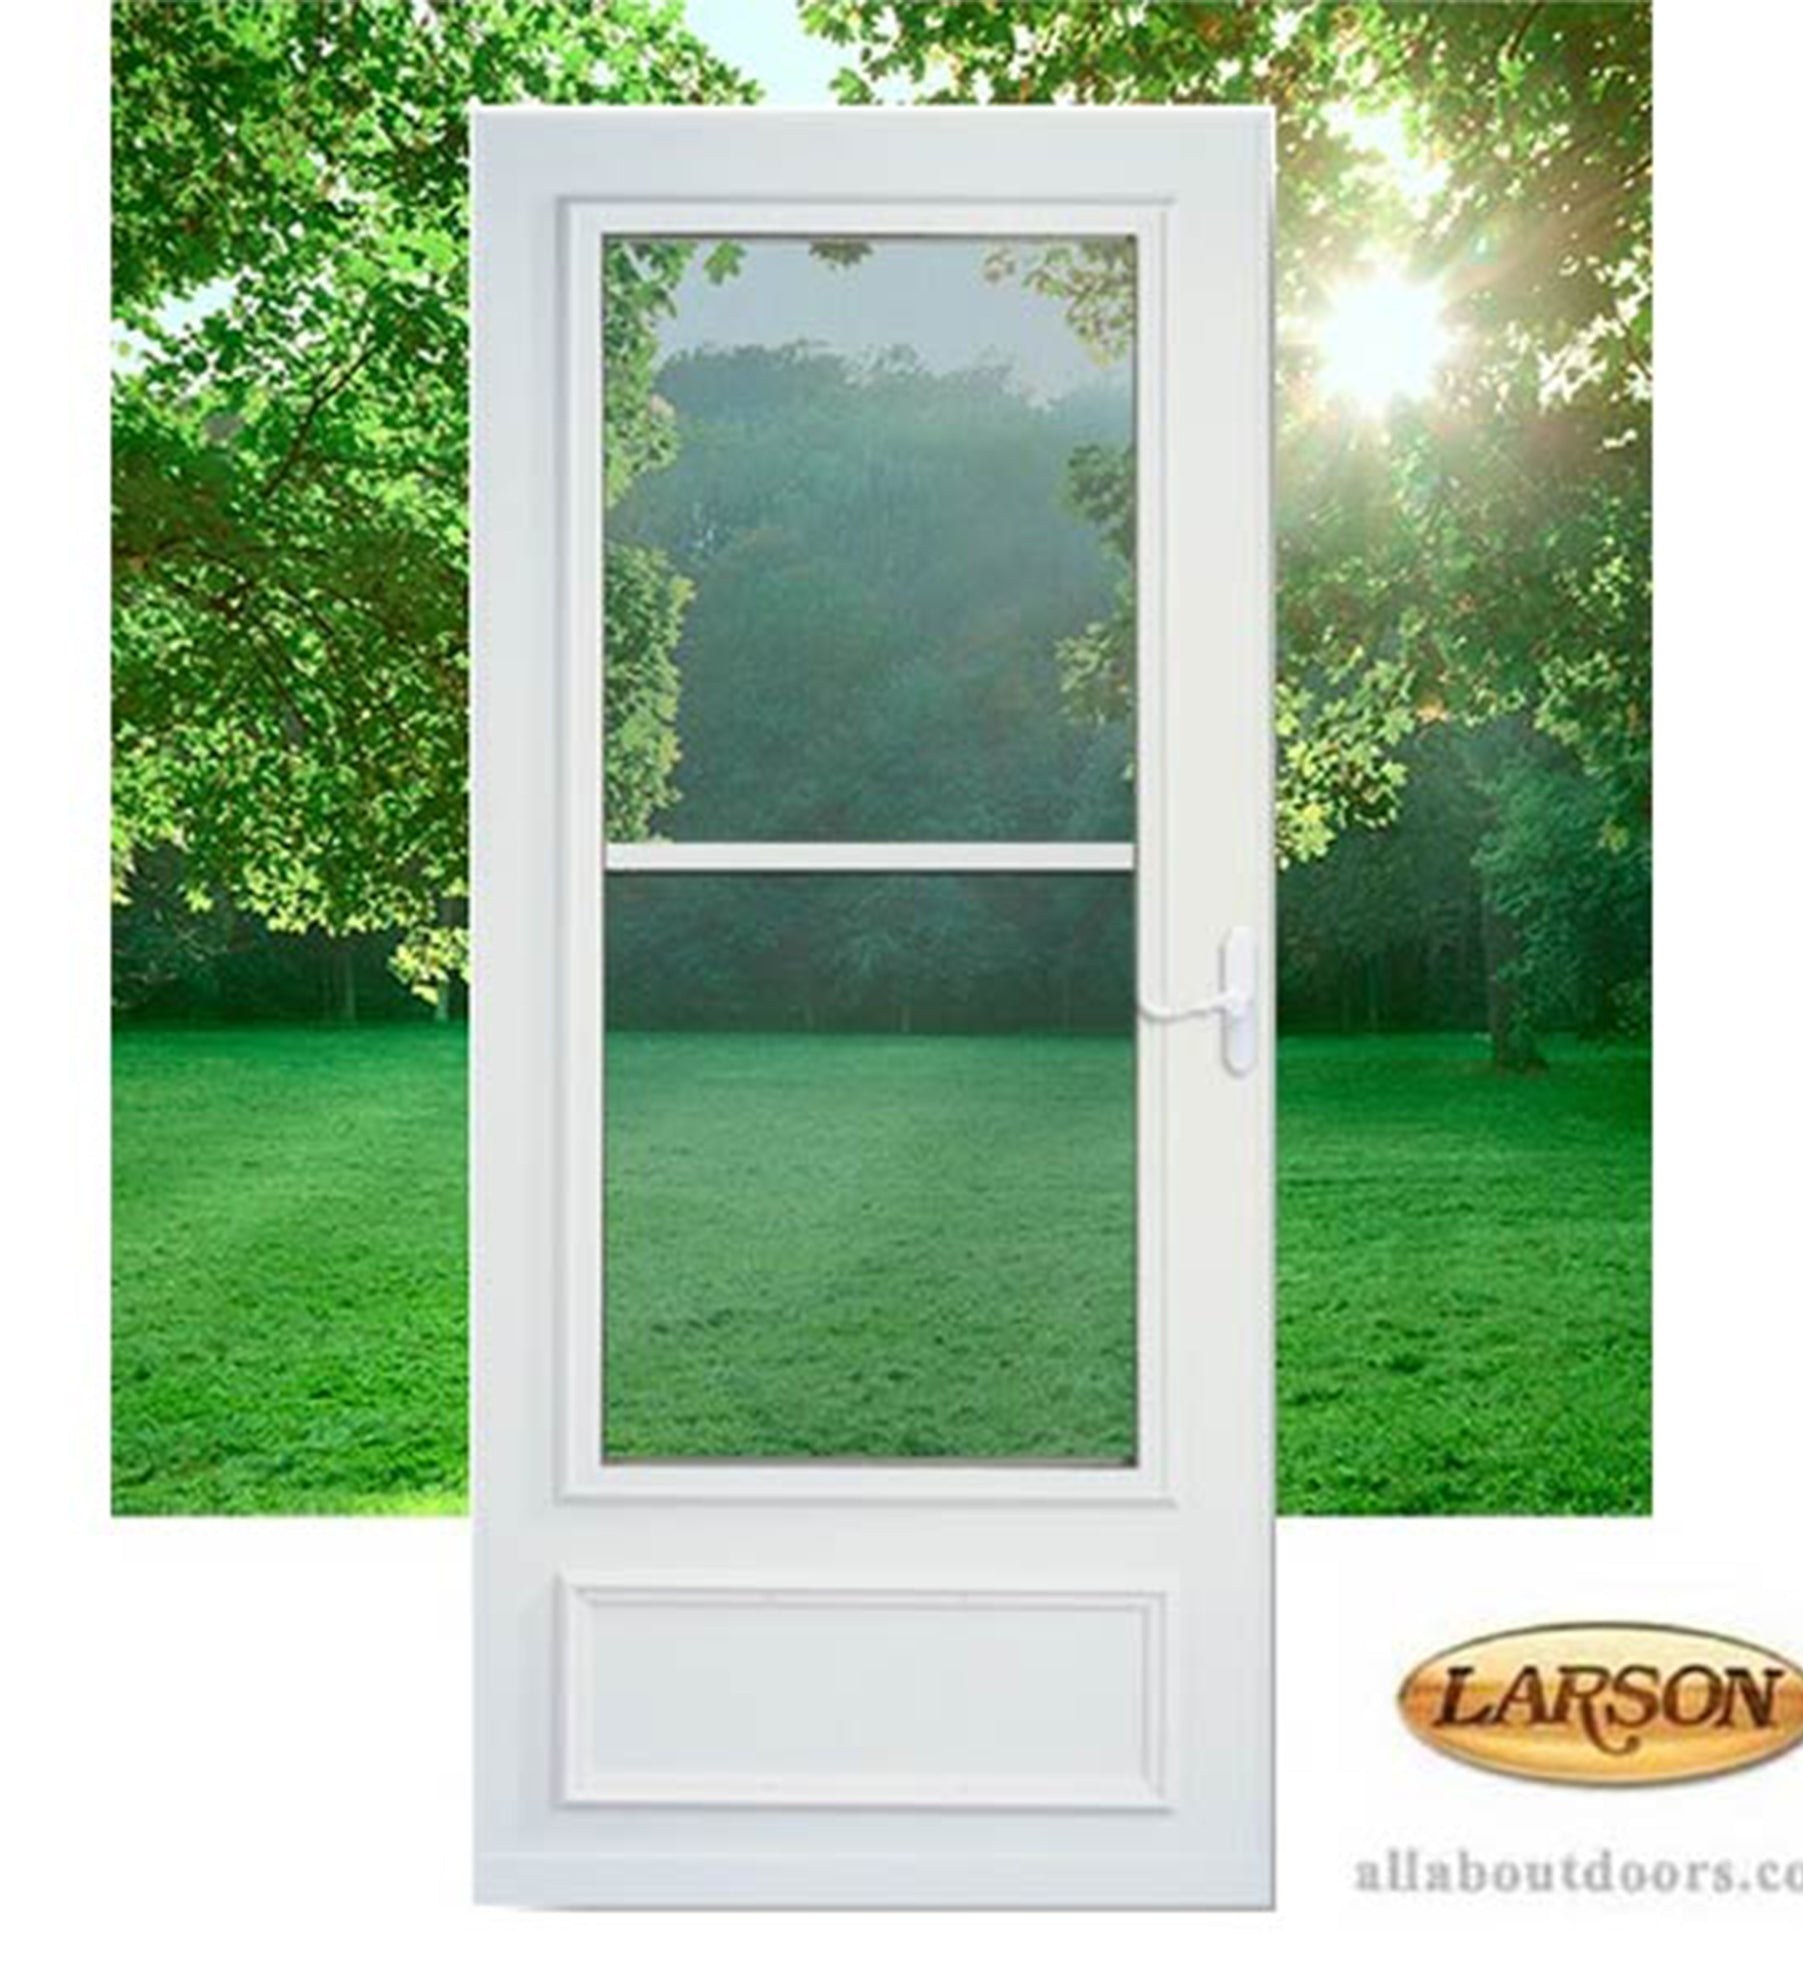 NSTALLED Larson Life-Core Pet Door Storm Door w/ Hardware STARTING $445